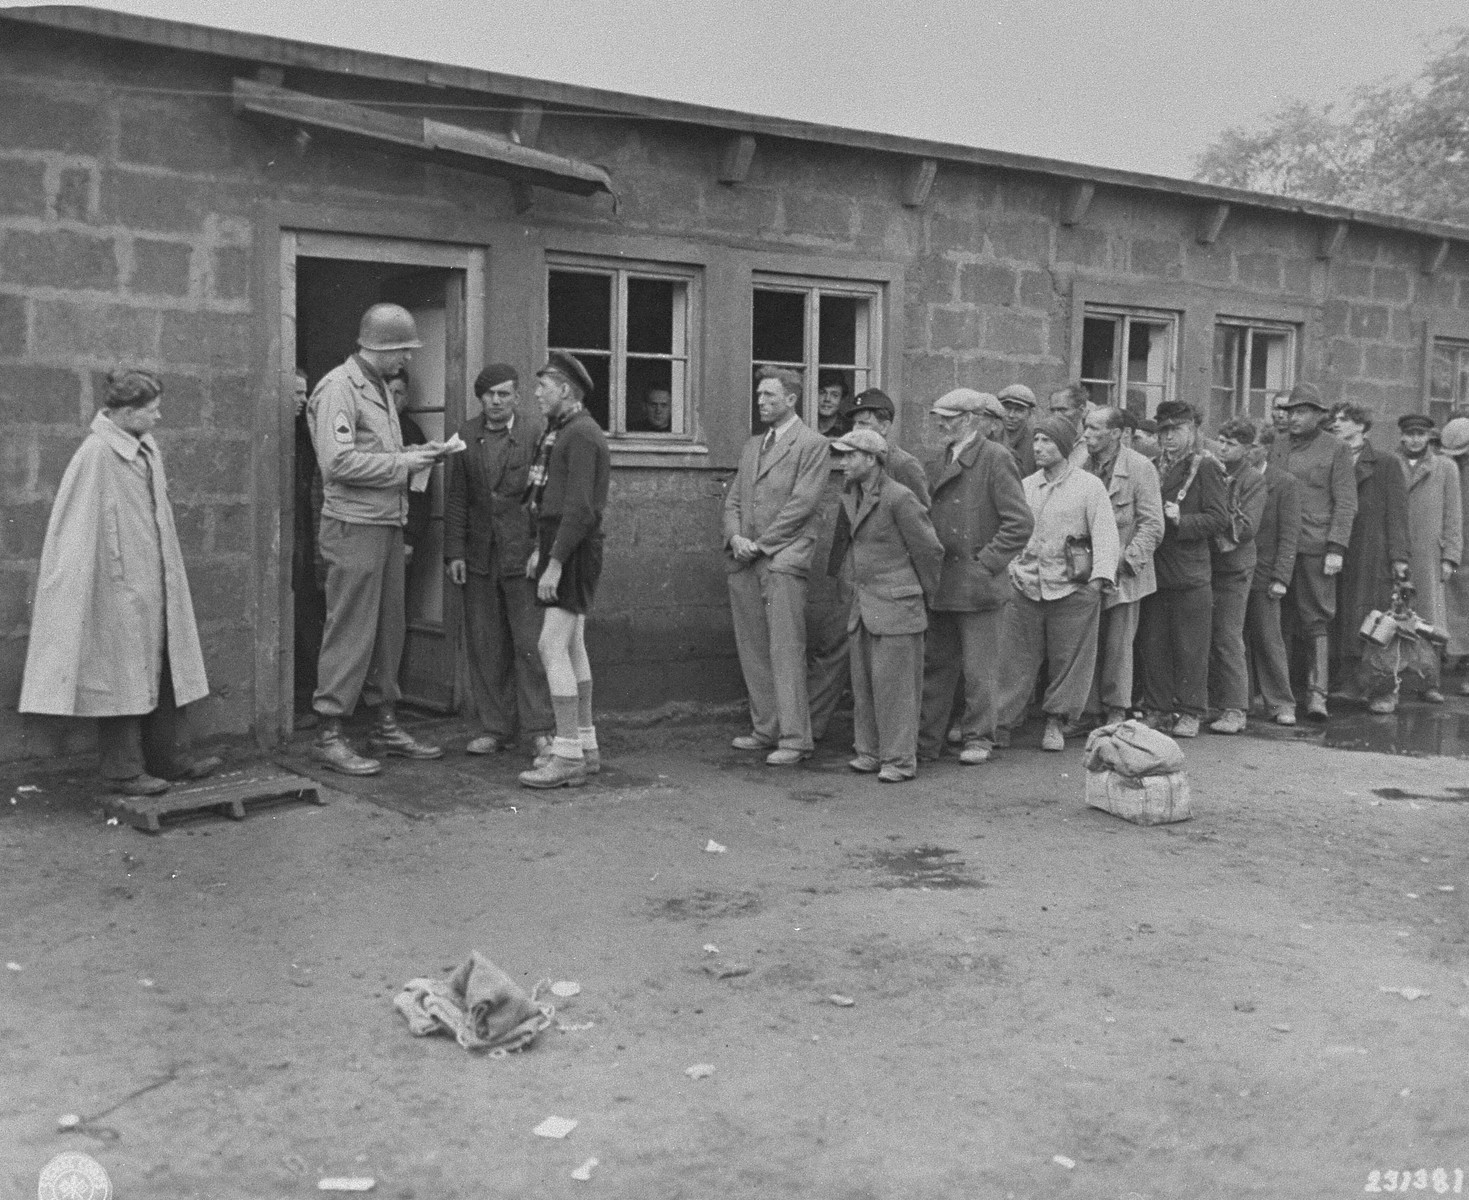 "A U.S. Army sergeant checks the papers of new German prisoners lined up outside of the processing center of the Recklinghausen internment camp.  When U.S. Ninth Army troops captured the concentration camp for Soviet civilians located near Recklinghausen, Germany, they converted it into a separation center for prisoners of war and war criminals.  After the first German prisoners arrived at the camp they were sent to the interrogation department, which was supervised by Captain Harold Puttfer and Lieutenant H. Goodman.  The camp had three sections called ""cages.""  One of these was for women, another for persons incarcerated for minor offenses, and the third for hardened criminals.  All three sections were filled to capacity, totalling 20,000 prisoners."